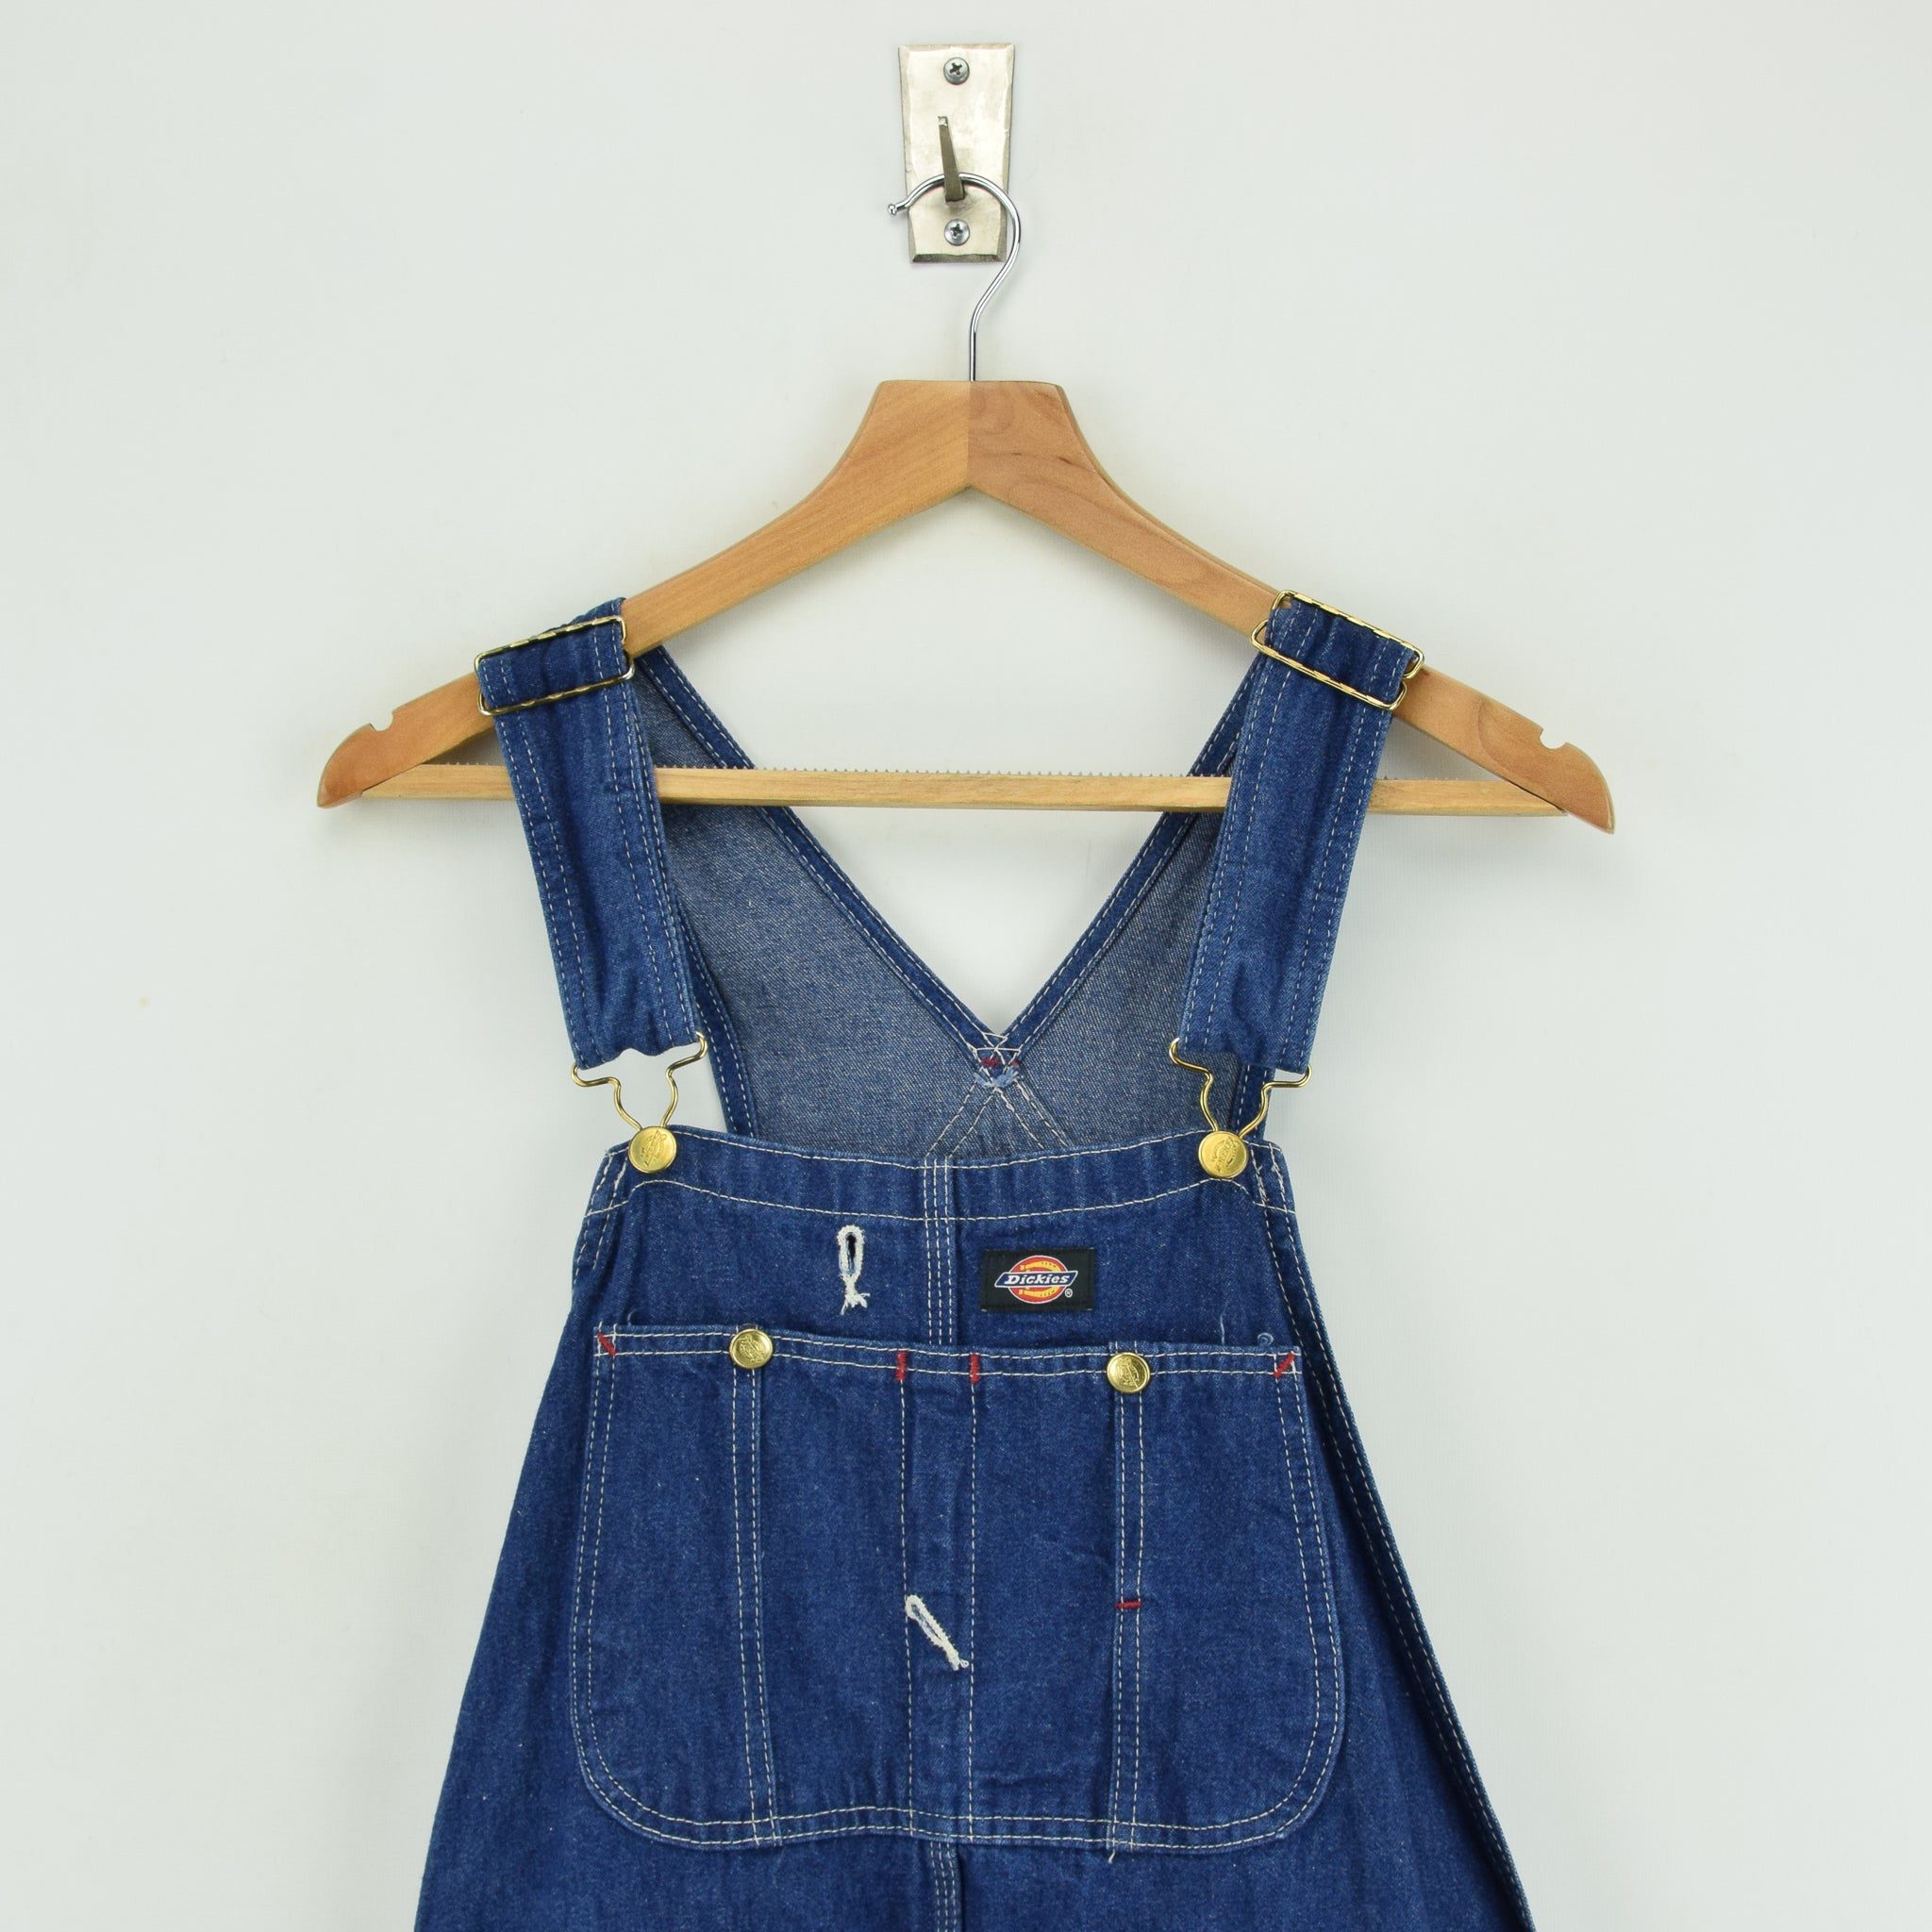 Vintage Dickies Denim Work Dungarees Blue Bib Overalls Trousers 32 W 30 L chest